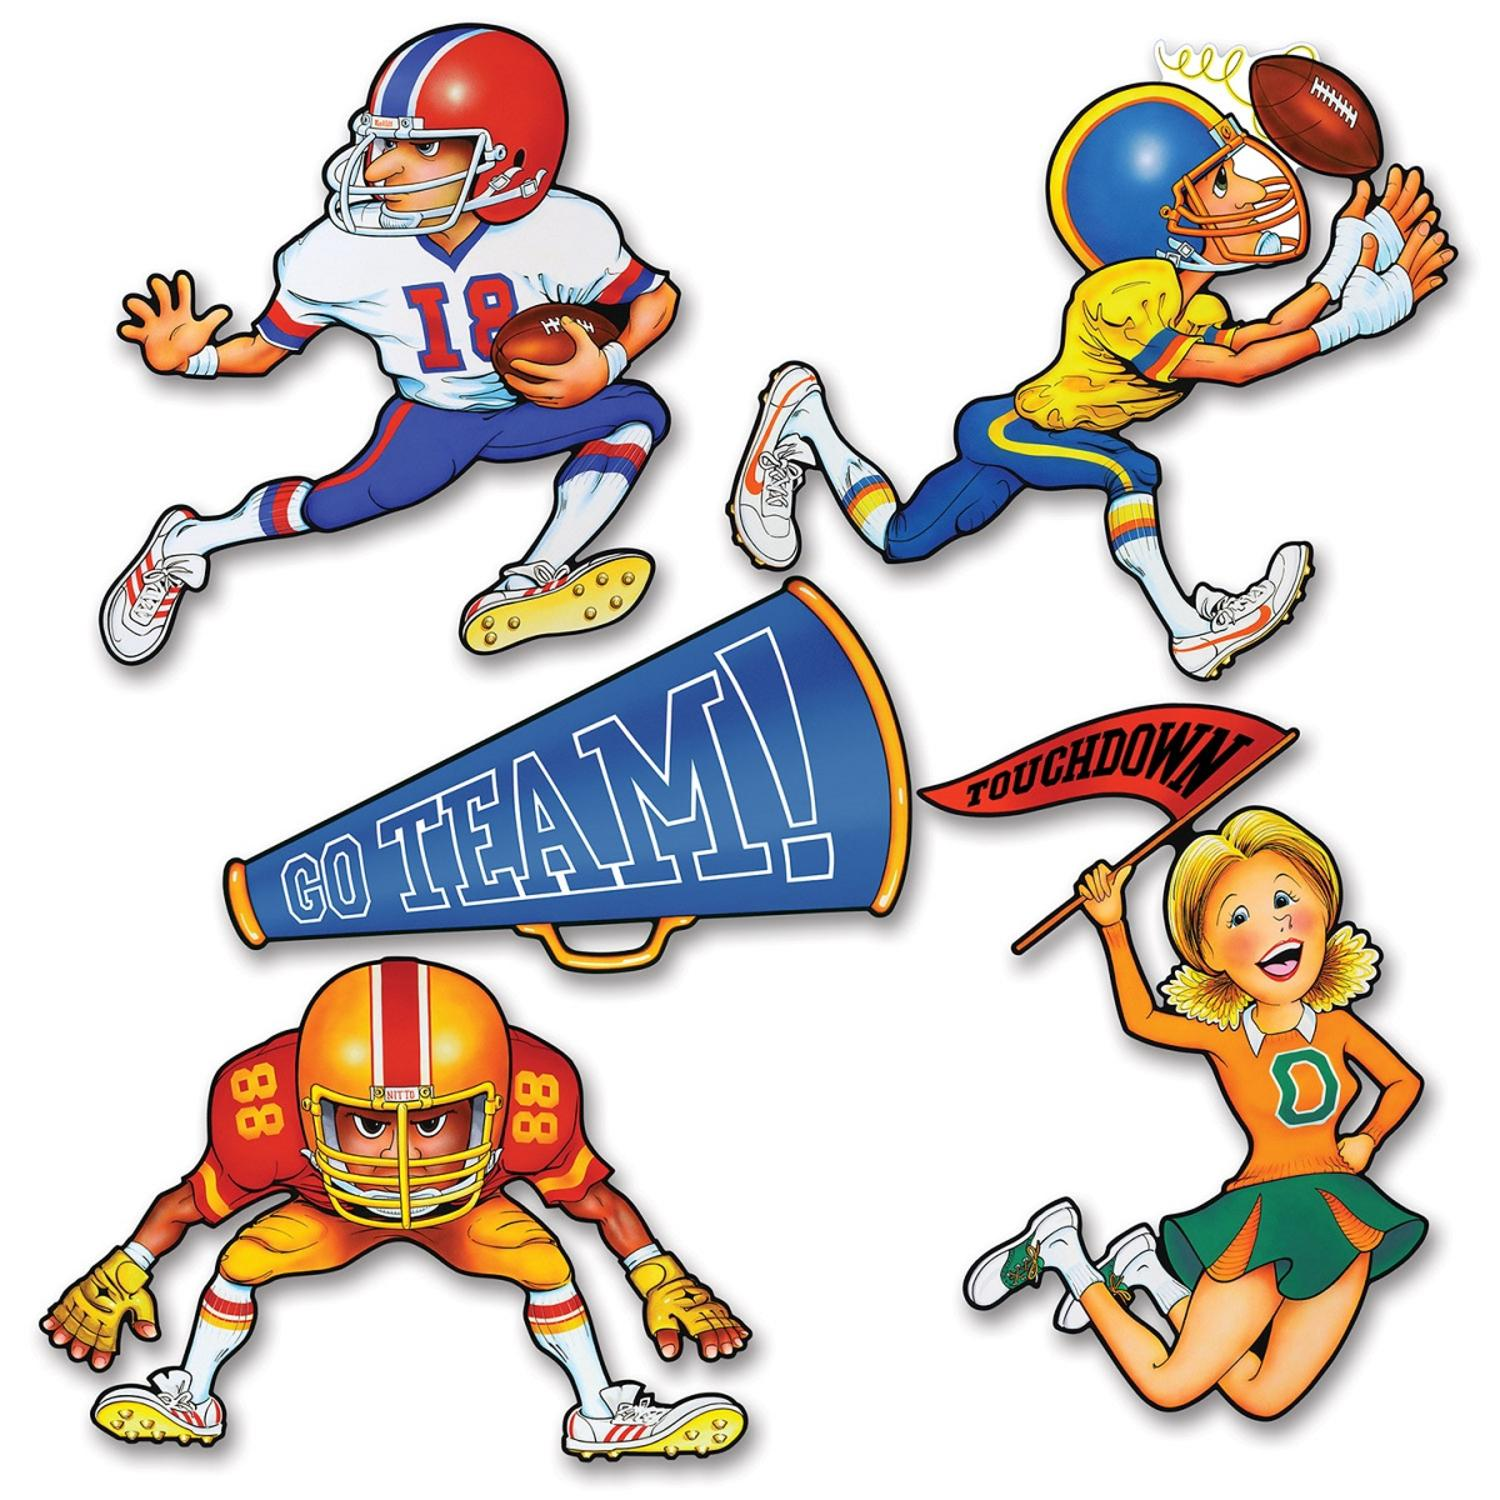 Club Pack of 24 Multi-Colored Football Player Sports Themed Cutout Party Decorations 19.5""